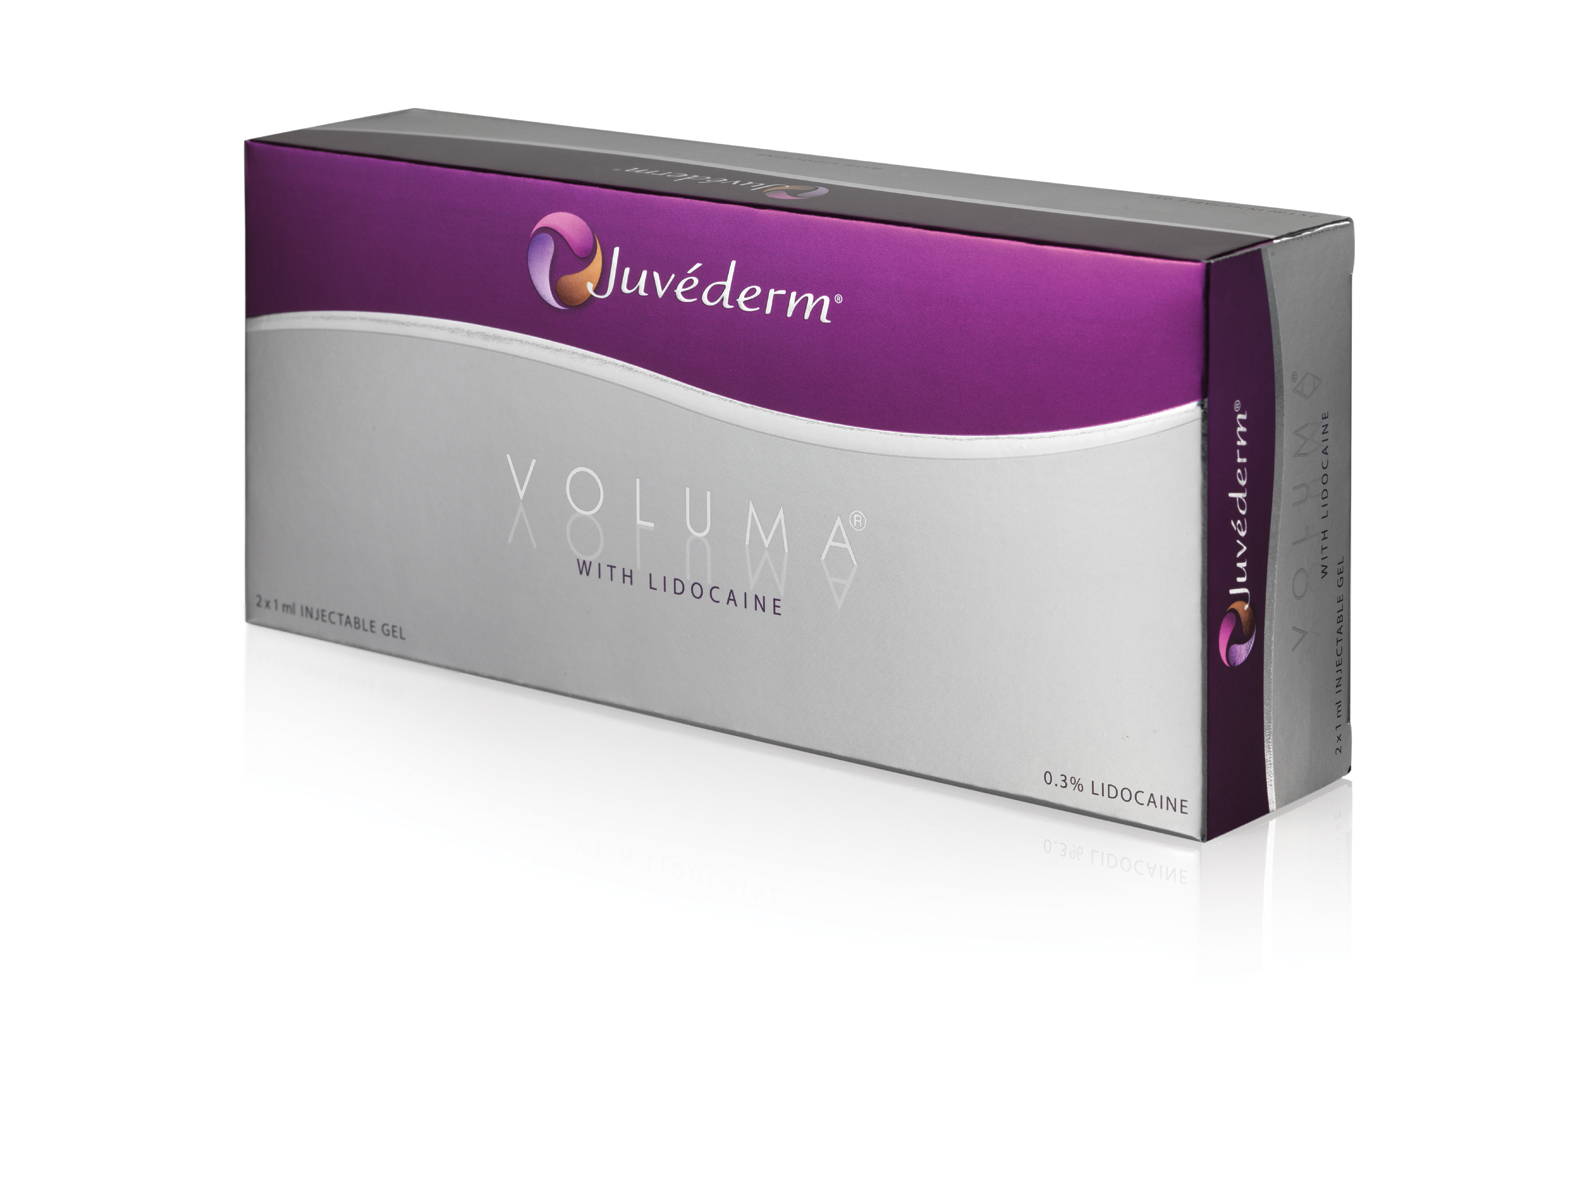 007 voluma_lidocaine_F1 (2)